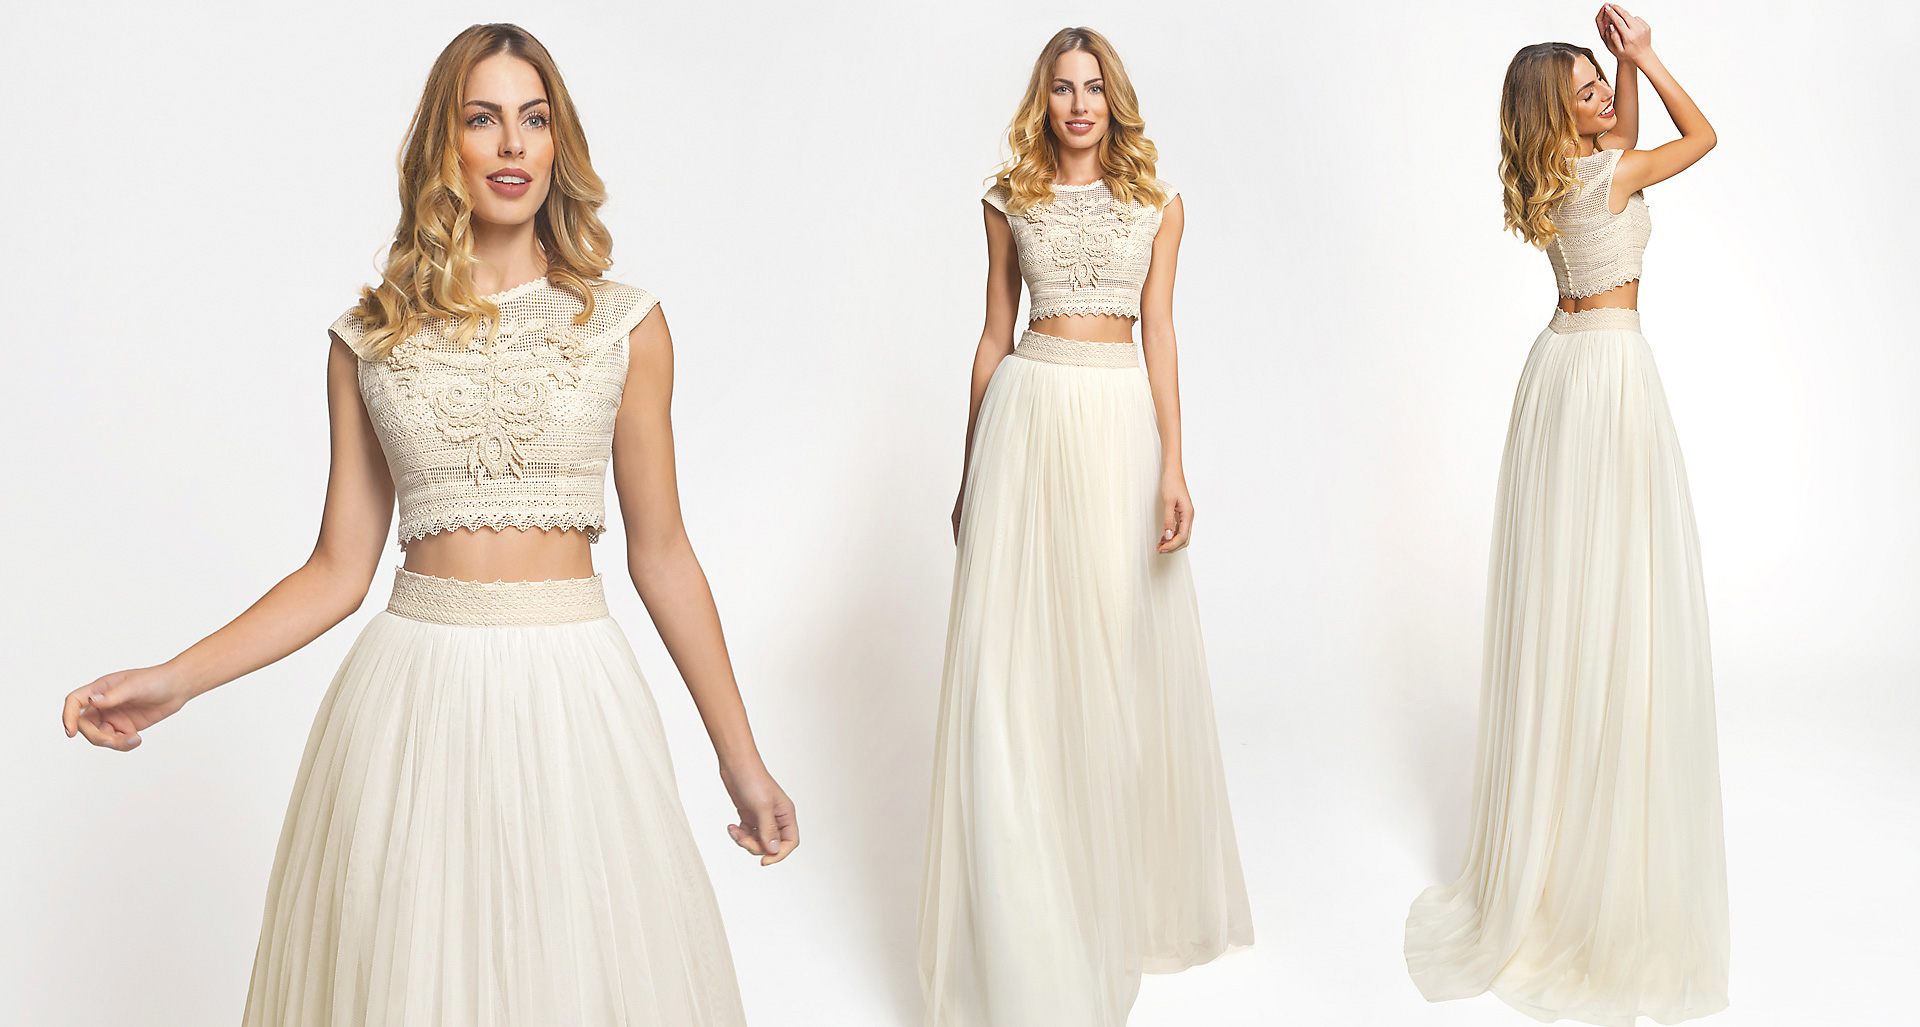 Hera from Hellenic Vintage Crop-Top Collection